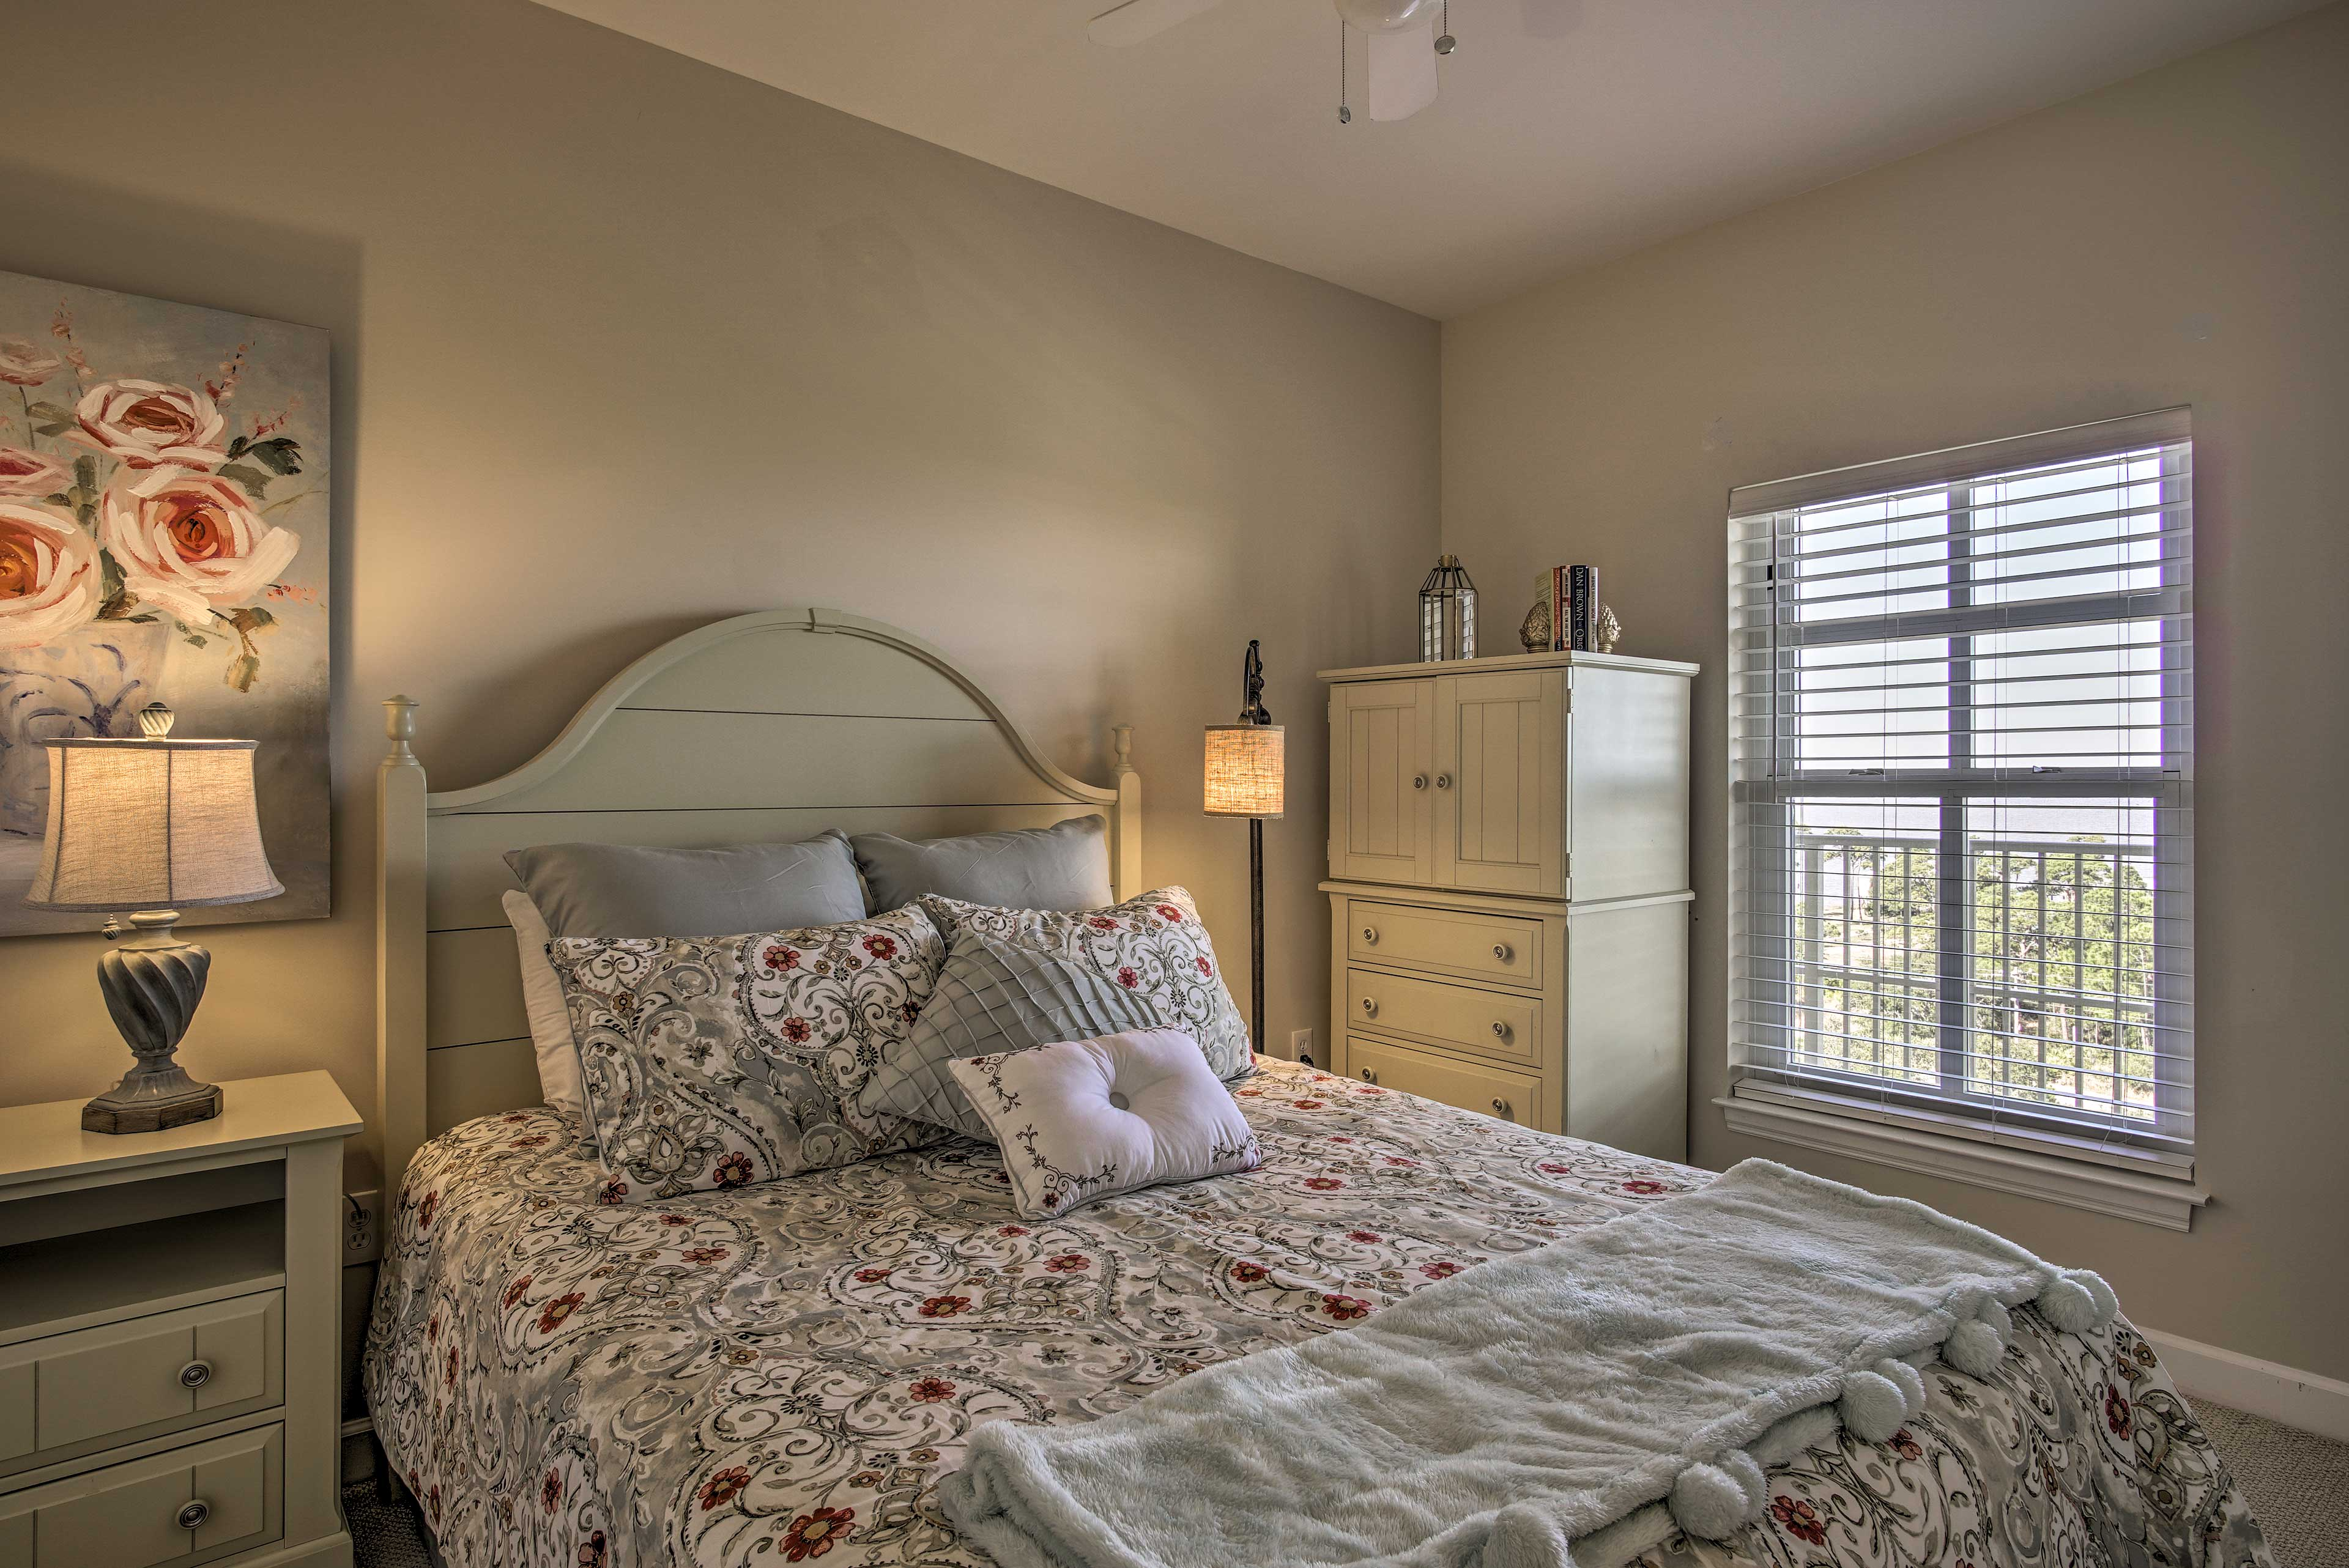 Drift to sleep in this cozy queen bed.